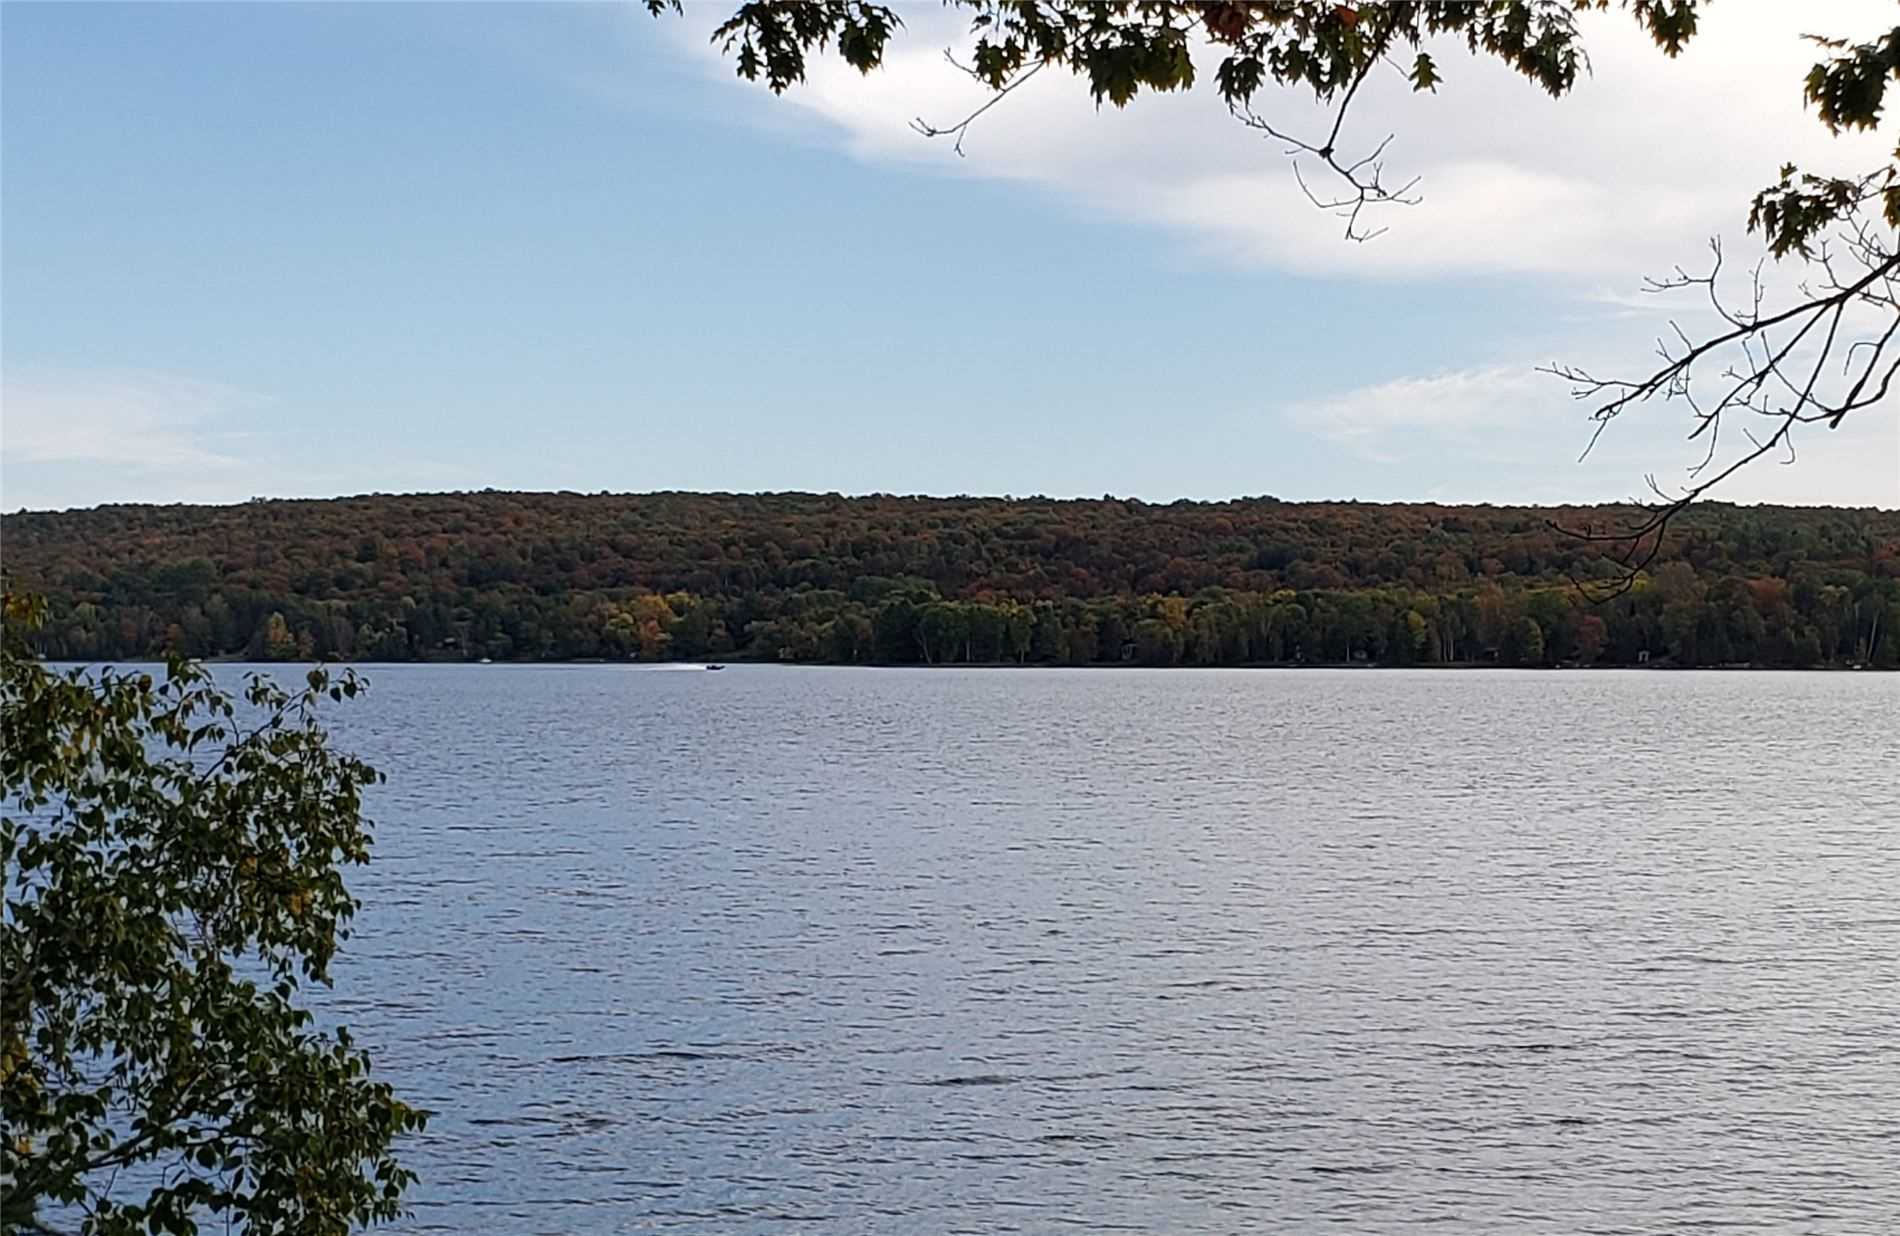 Beautiful 50' X 150' Lot Across The Road From Maple Lake Shoreline. Vacant Lot On Maple Lake In The Haliburton Area. House Recently Burned Down. Development Charges Exempt If Building A New Dwelling. Existing 2000 Gallon Holding Tank, Pumped 2020.